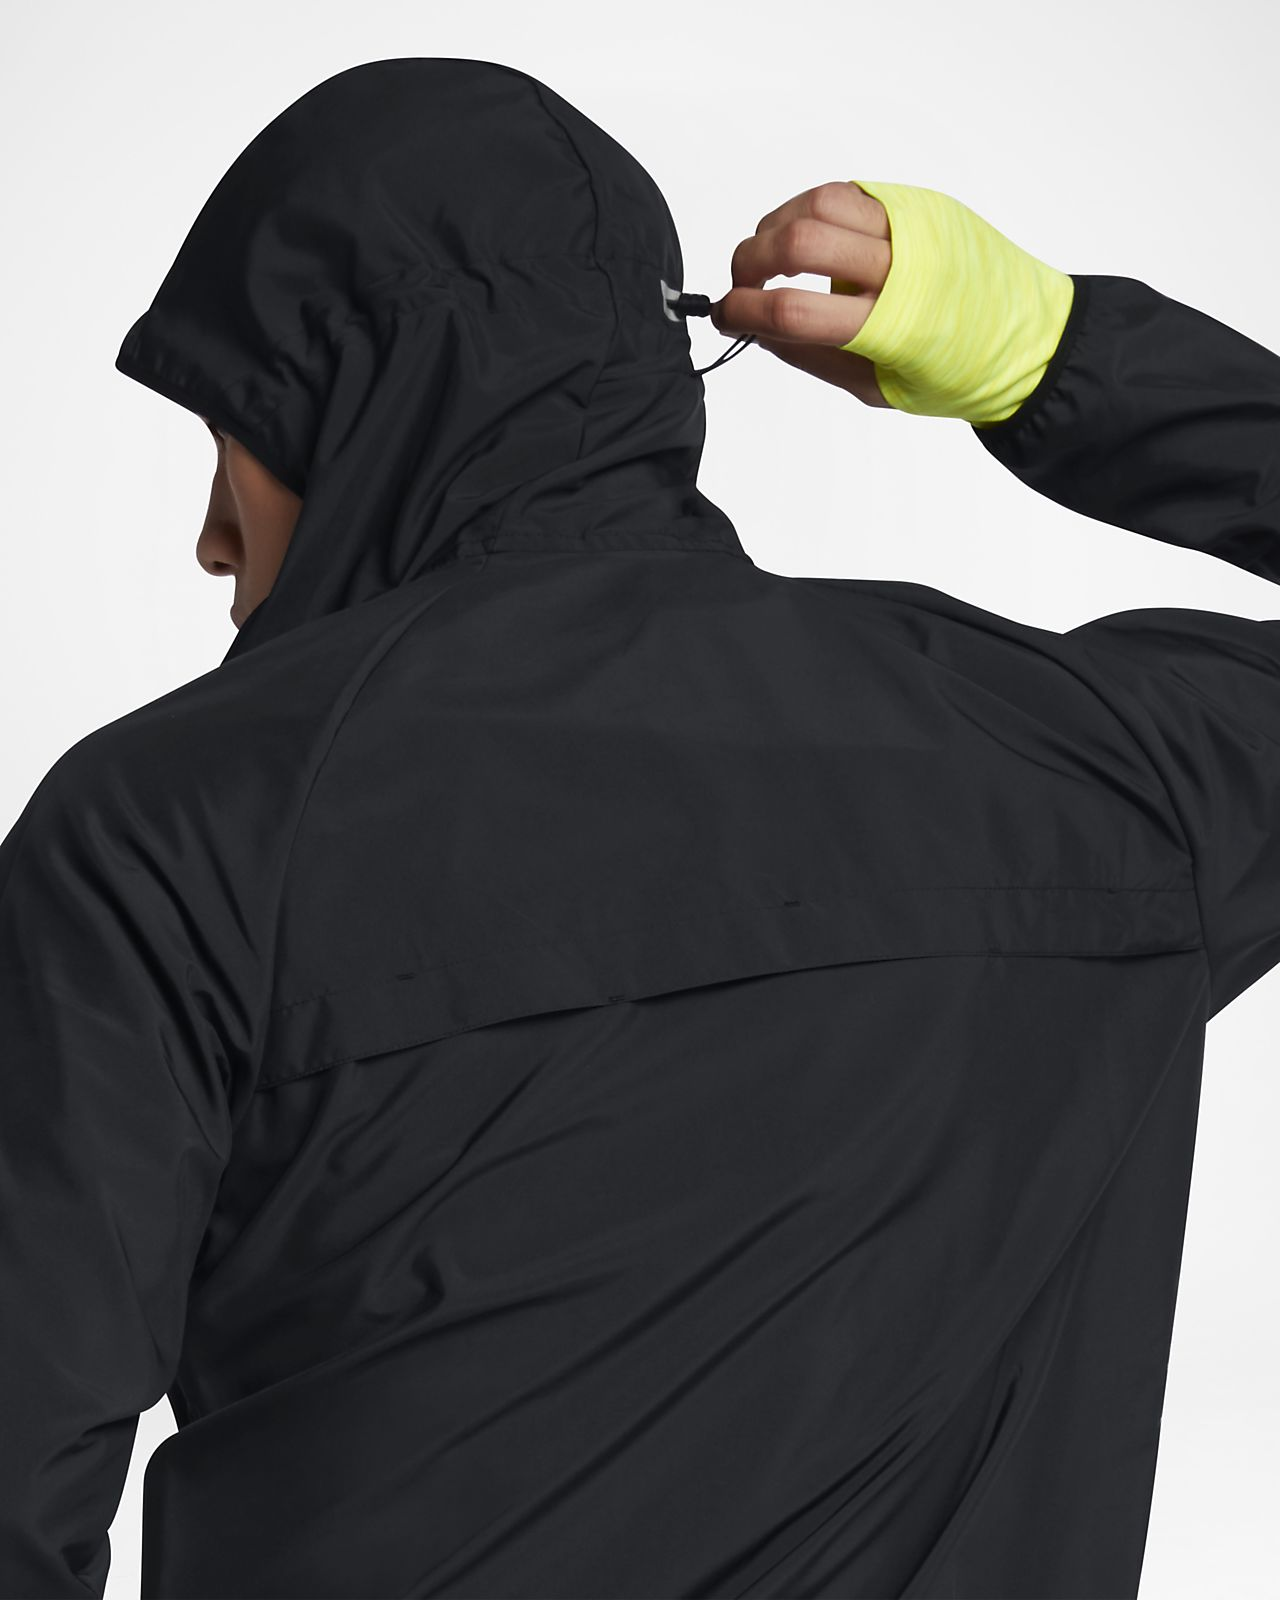 434cc2025ea5 Low Resolution Nike Essential Men s Running Jacket Nike Essential Men s  Running Jacket